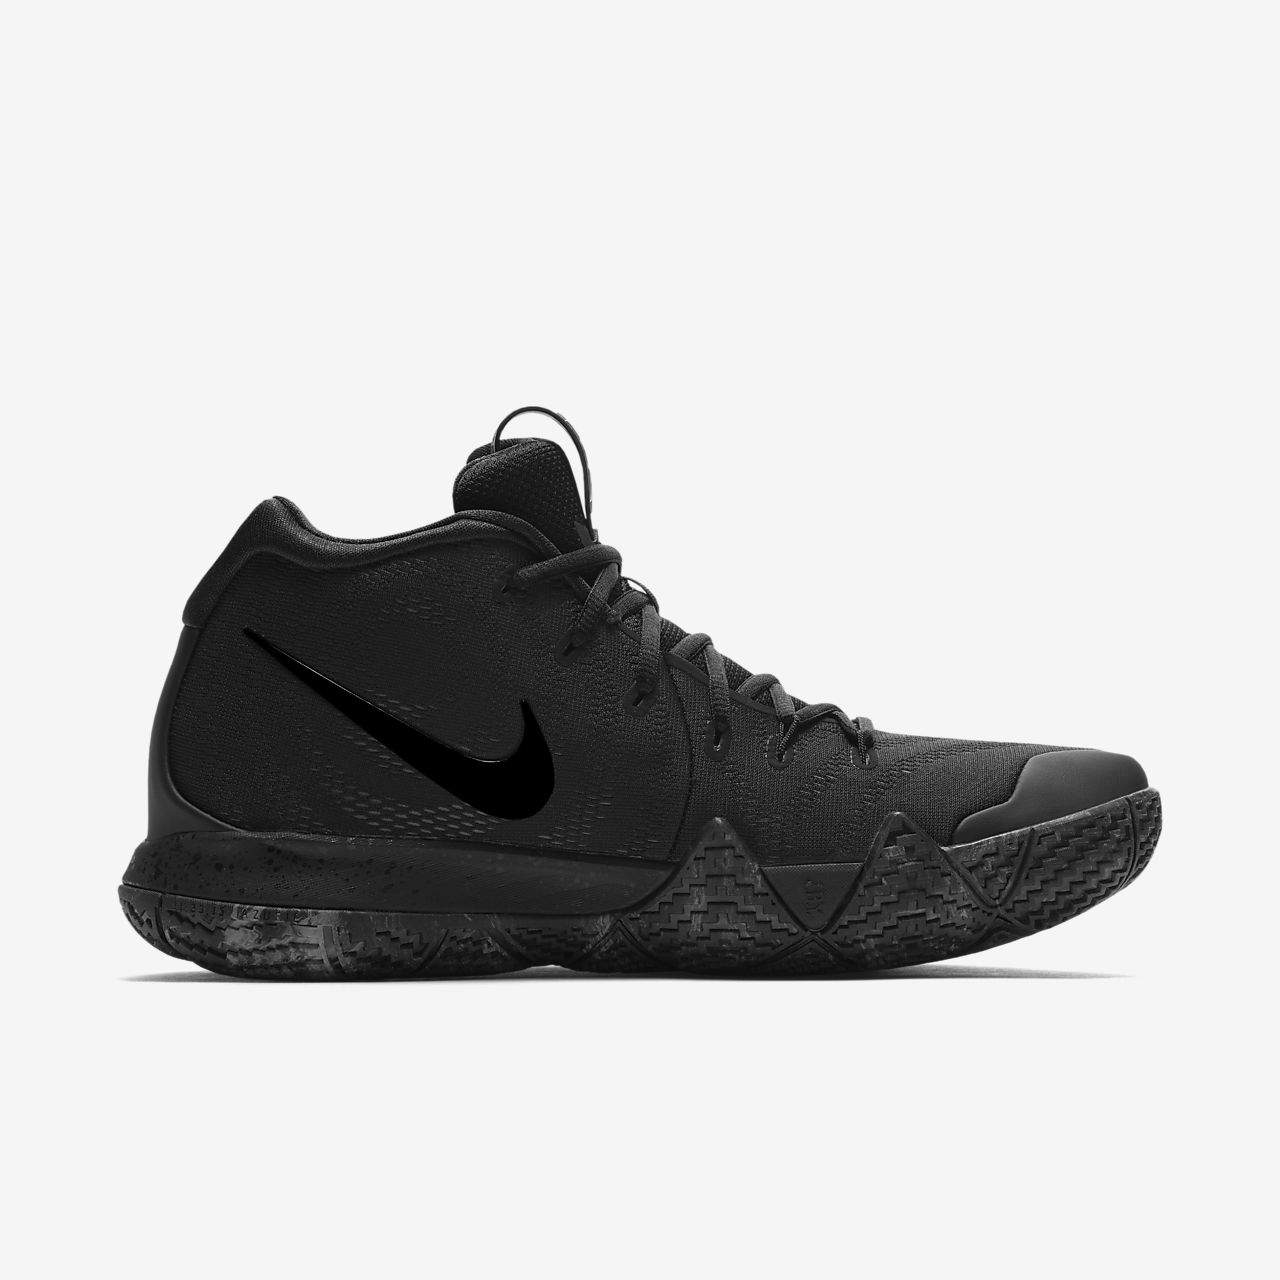 5213a66f69ff5a Low Resolution Kyrie 4 Basketball Shoe Kyrie 4 Basketball Shoe